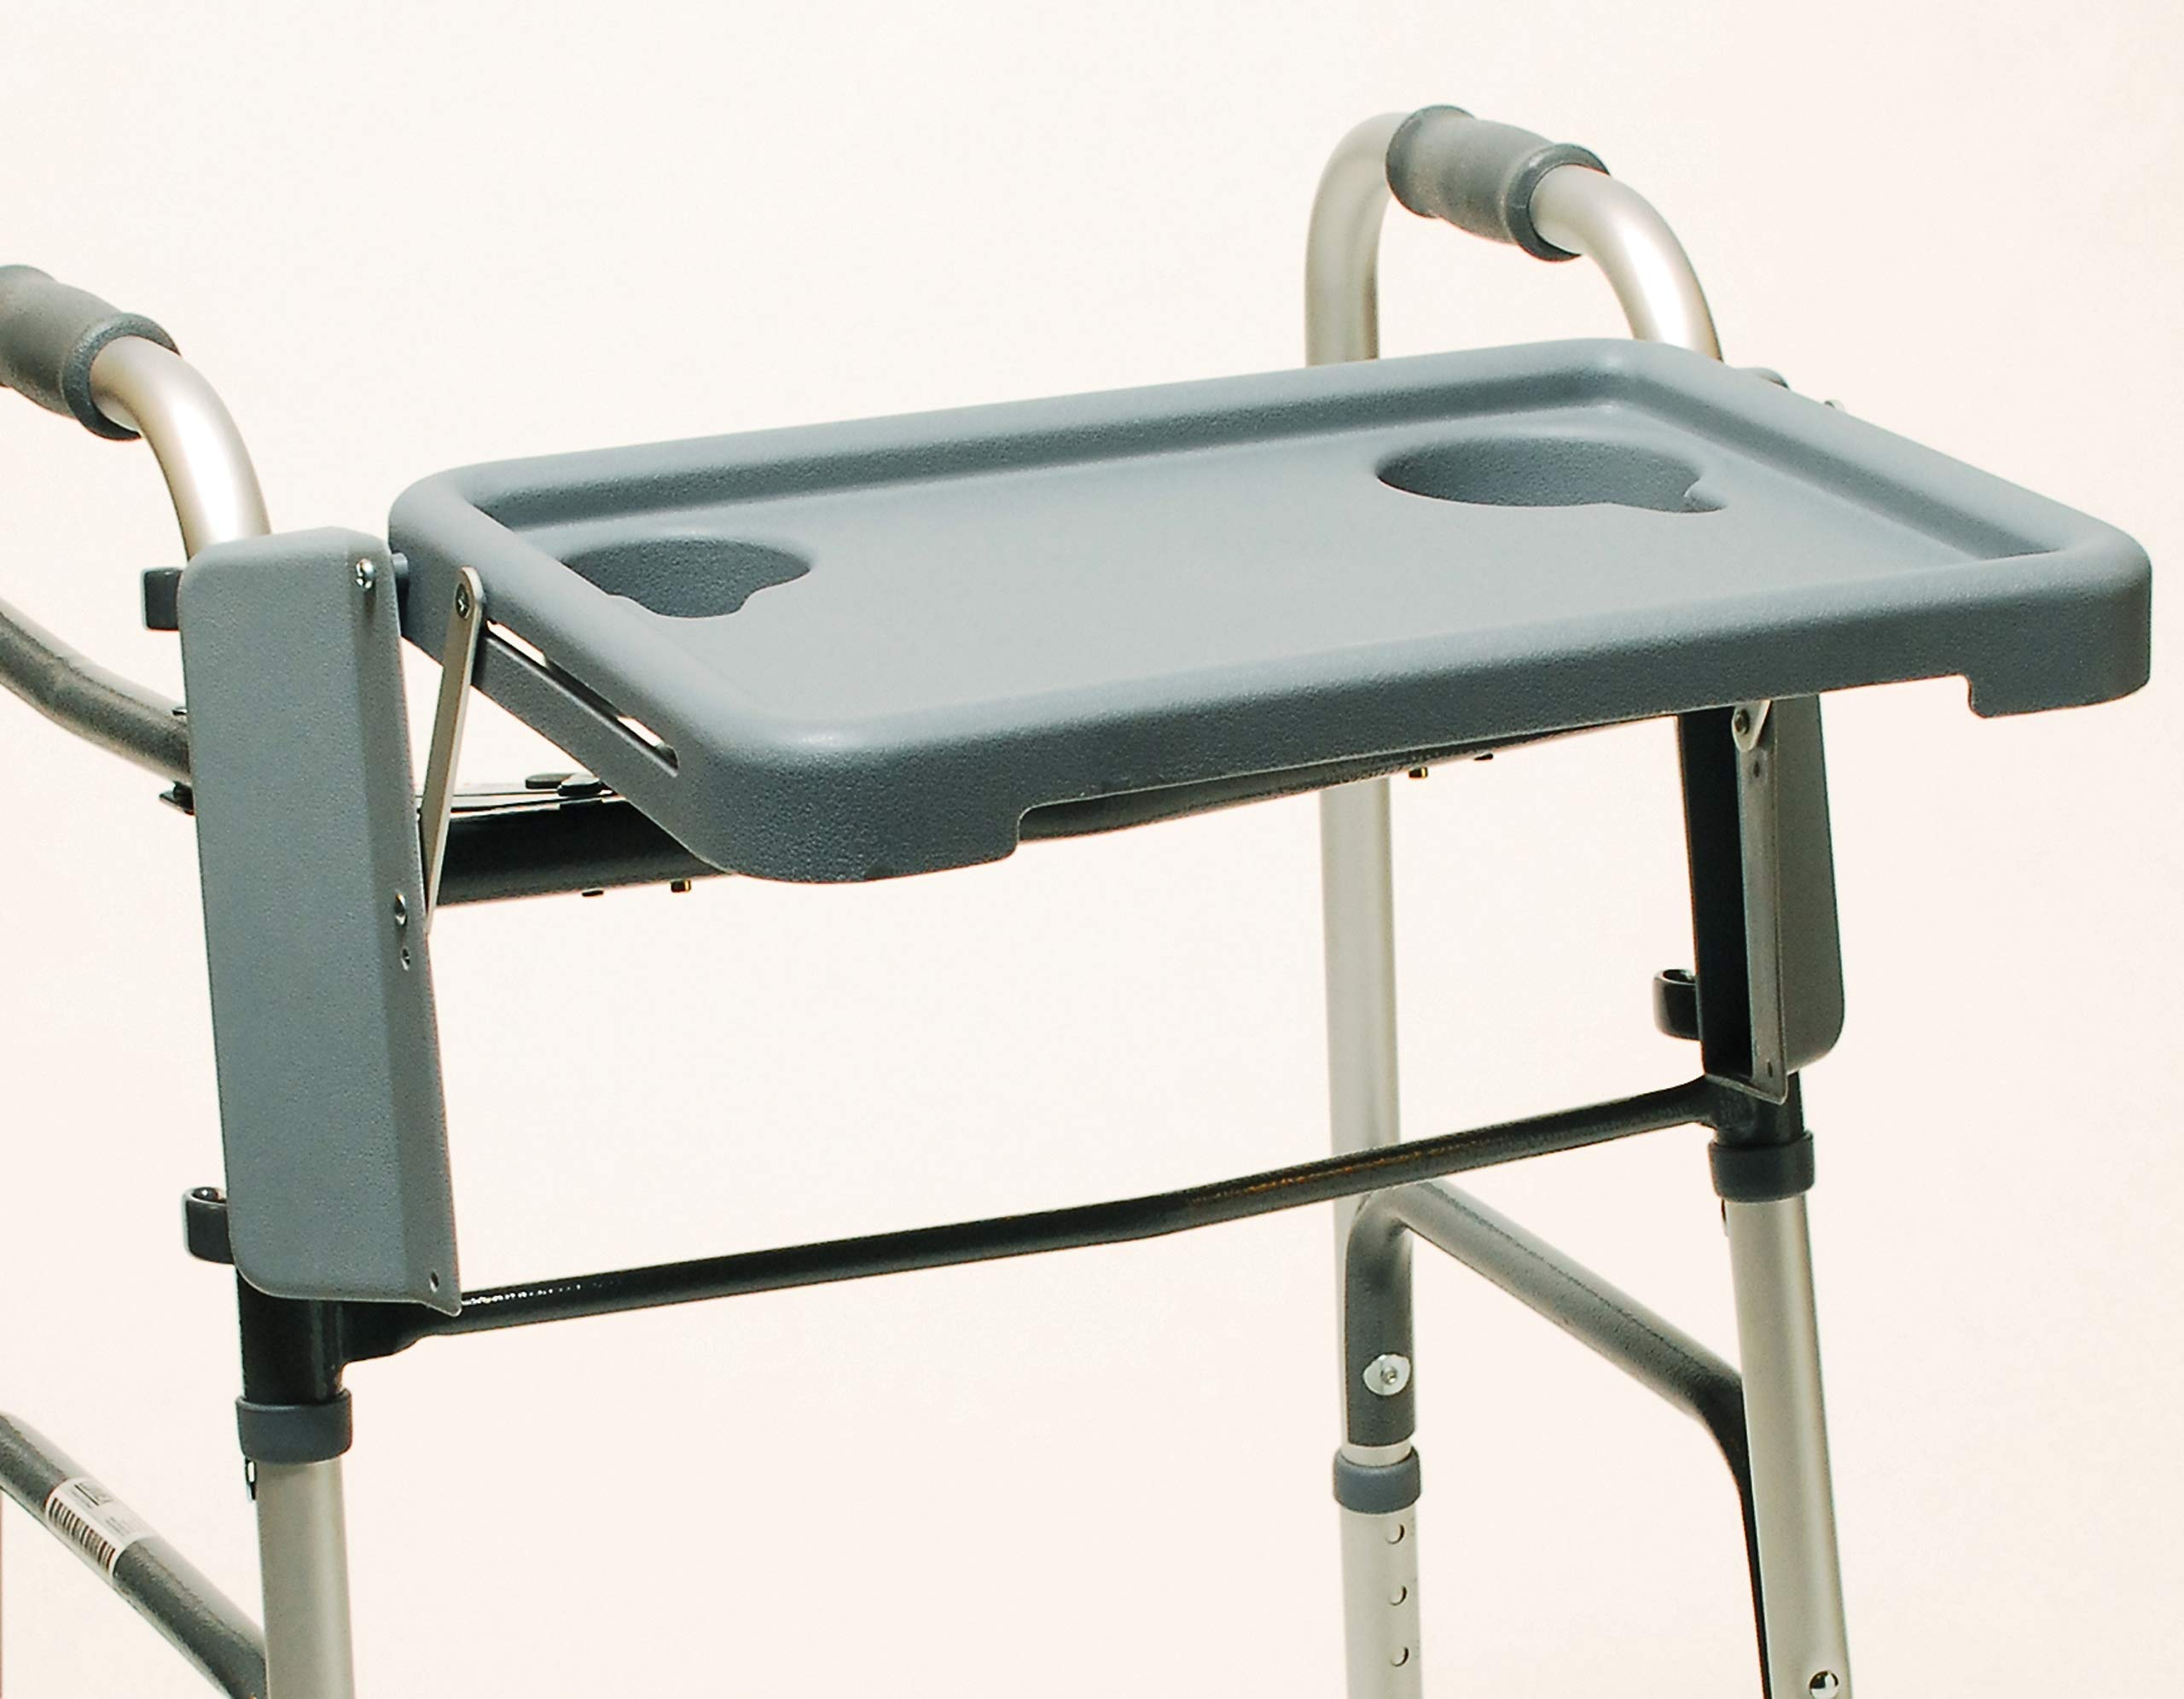 Lumex Folding Walker Tray with Cup Holders and Tool-Free Assembly, Grey, 603900A by Graham-Field